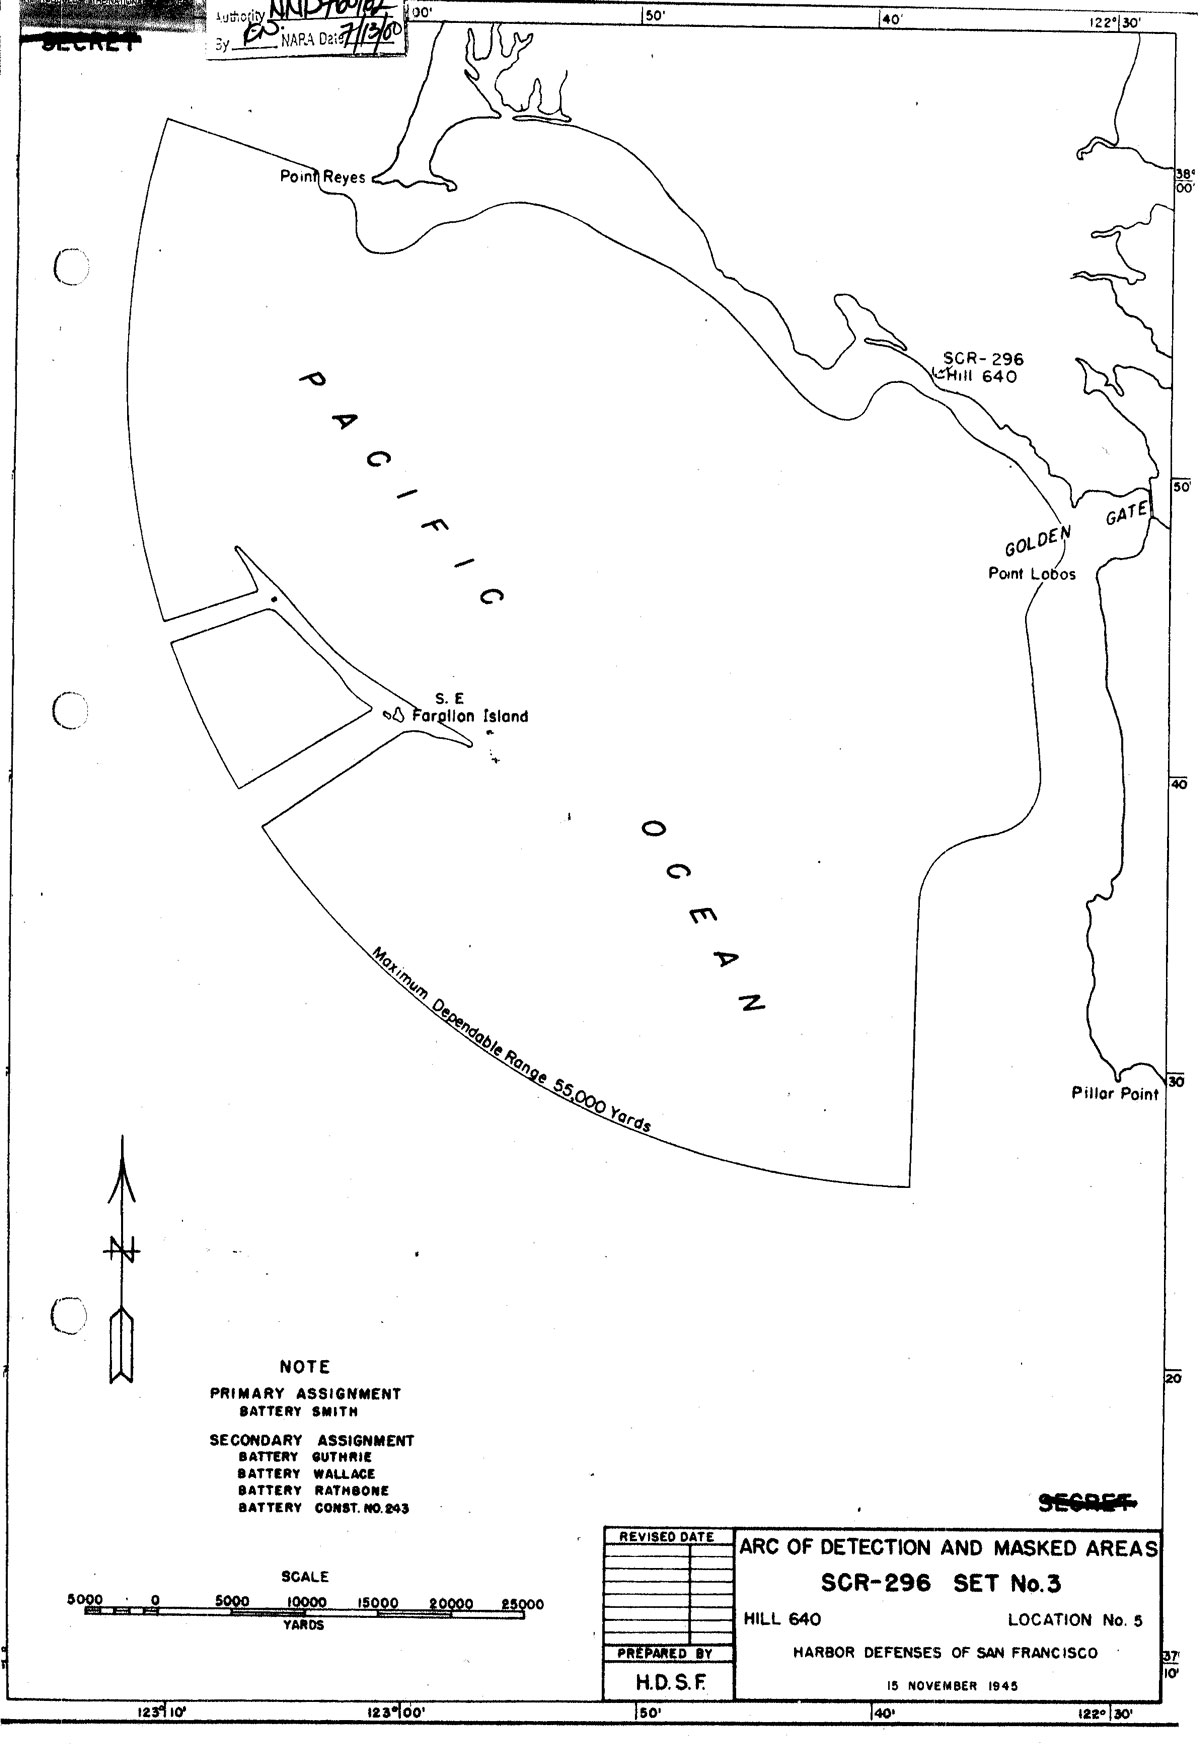 Hill 640 Military Reservation Stinson Wiring Diagram Site Maps